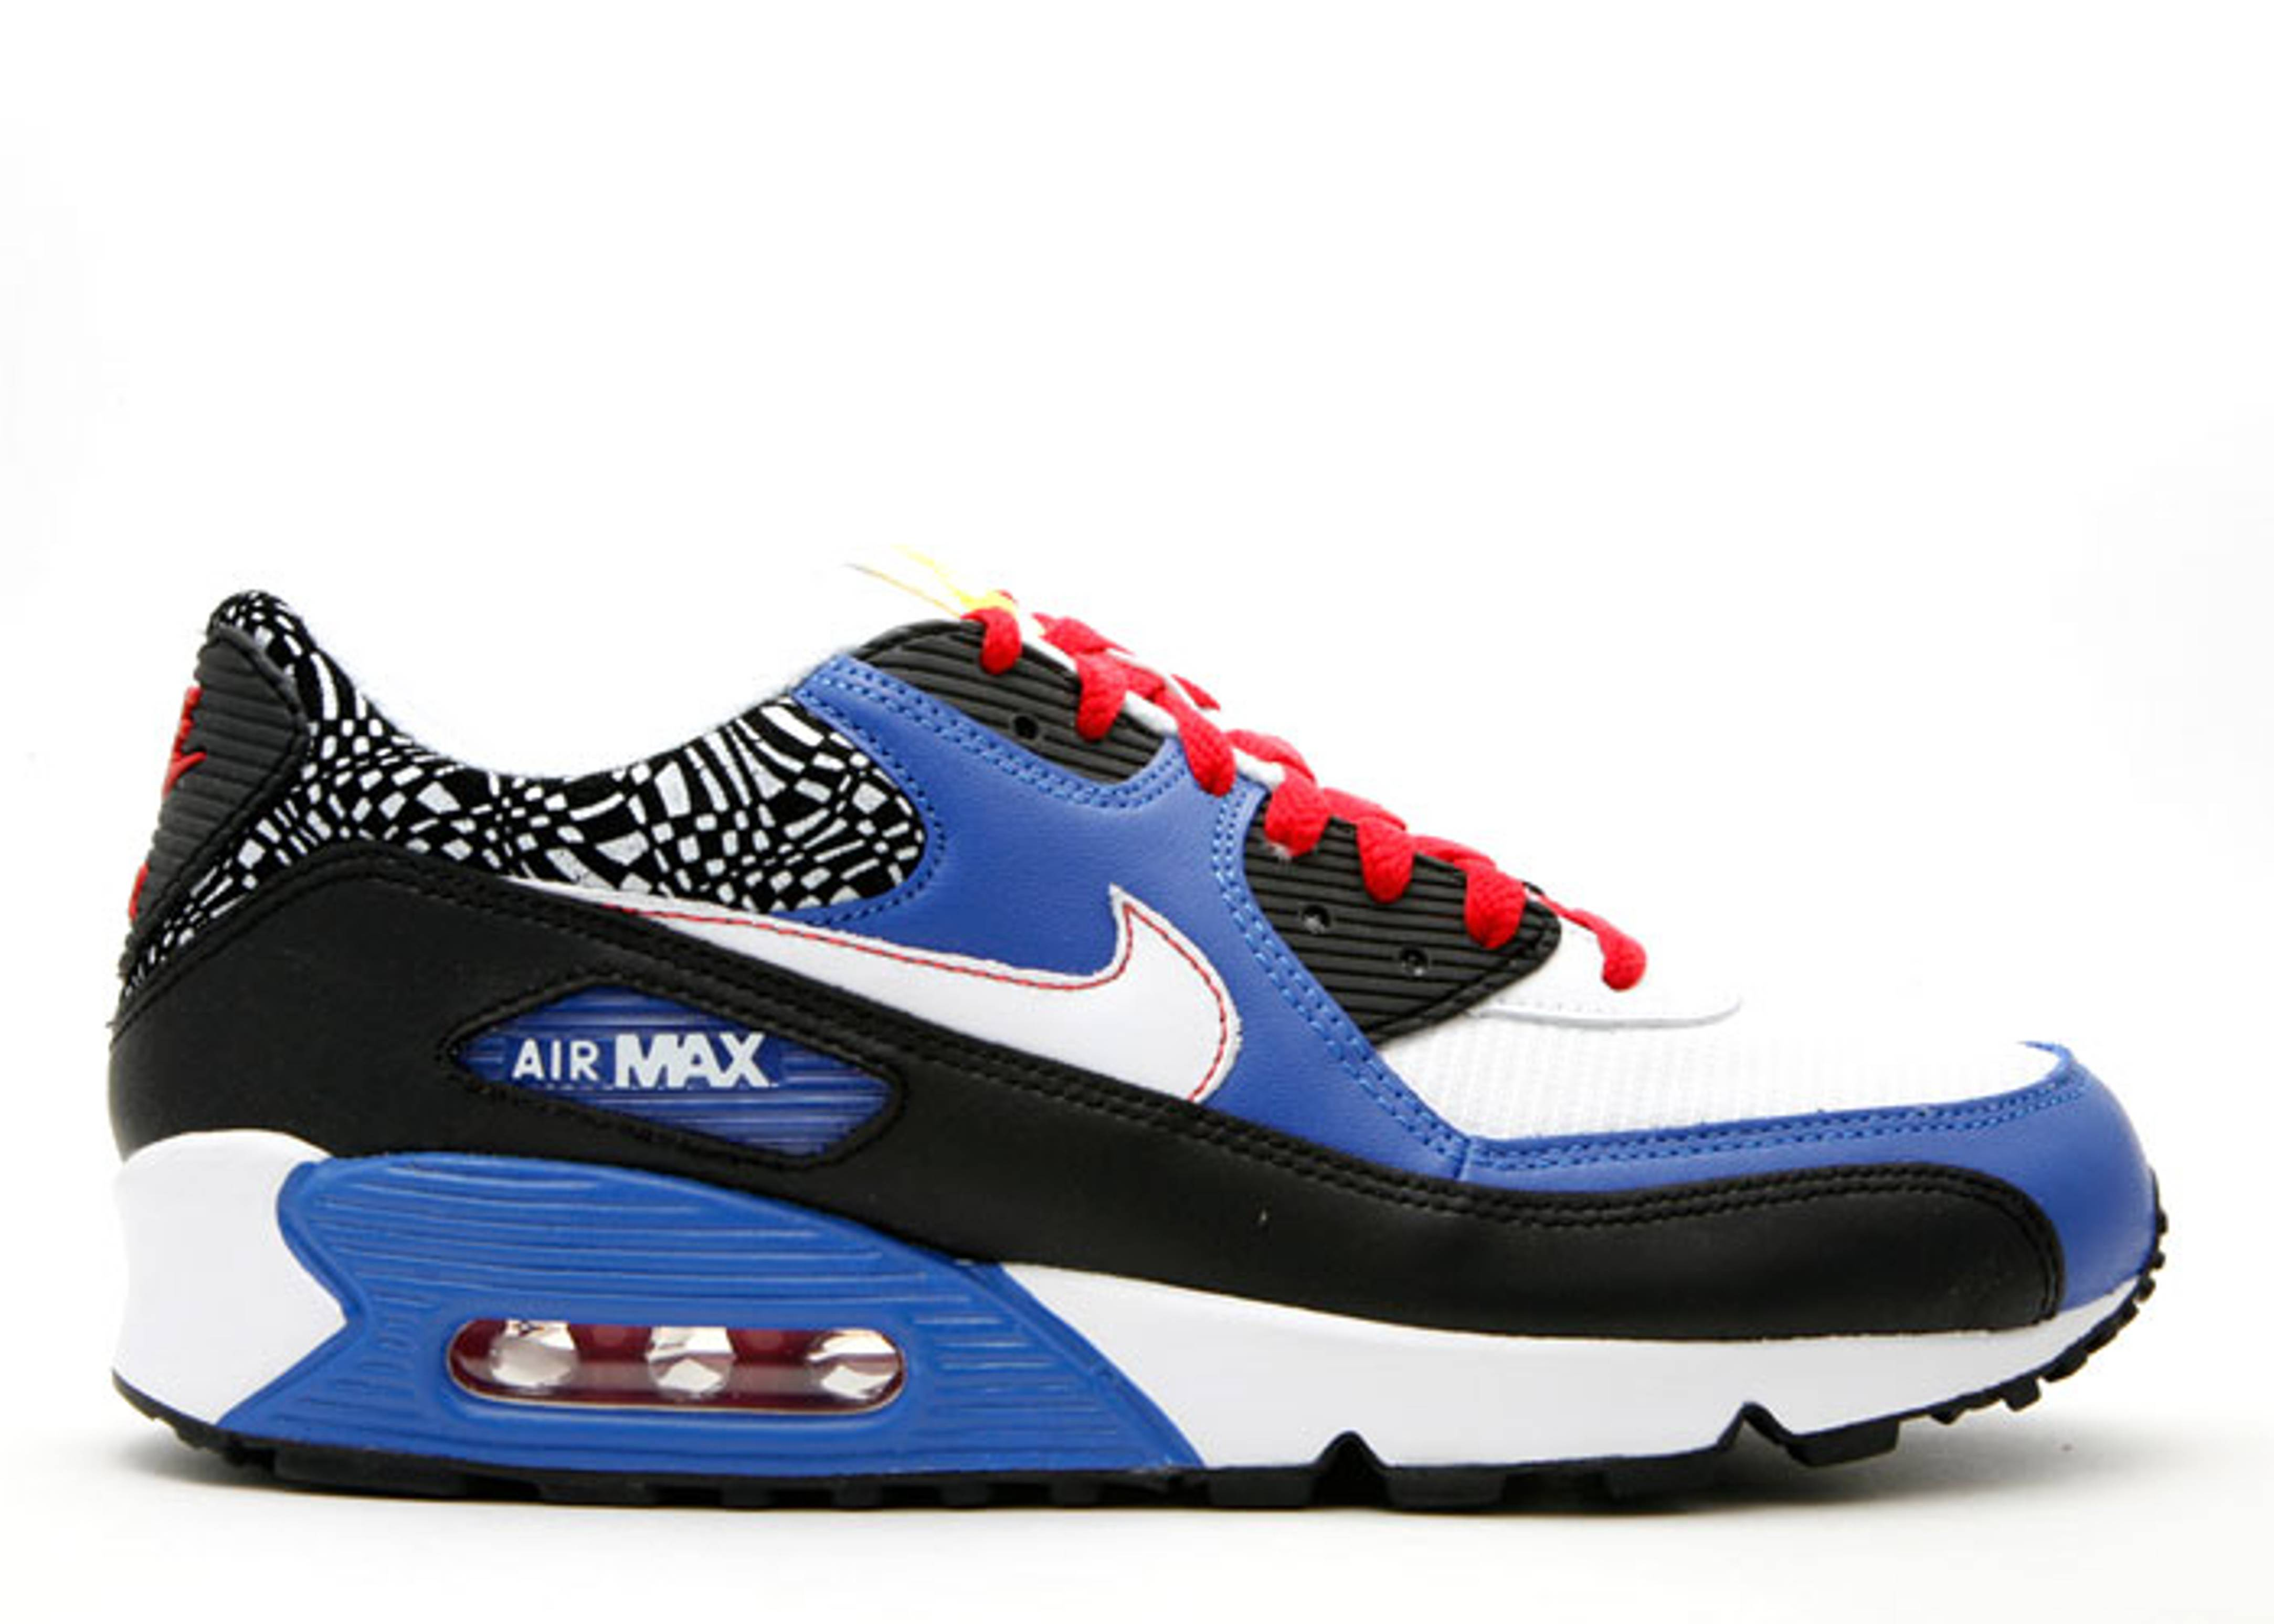 new concept 0882e bfbae Air Max 90 Leather - Nike - 302519 013 - black white-varsity royal-sport red    Flight Club